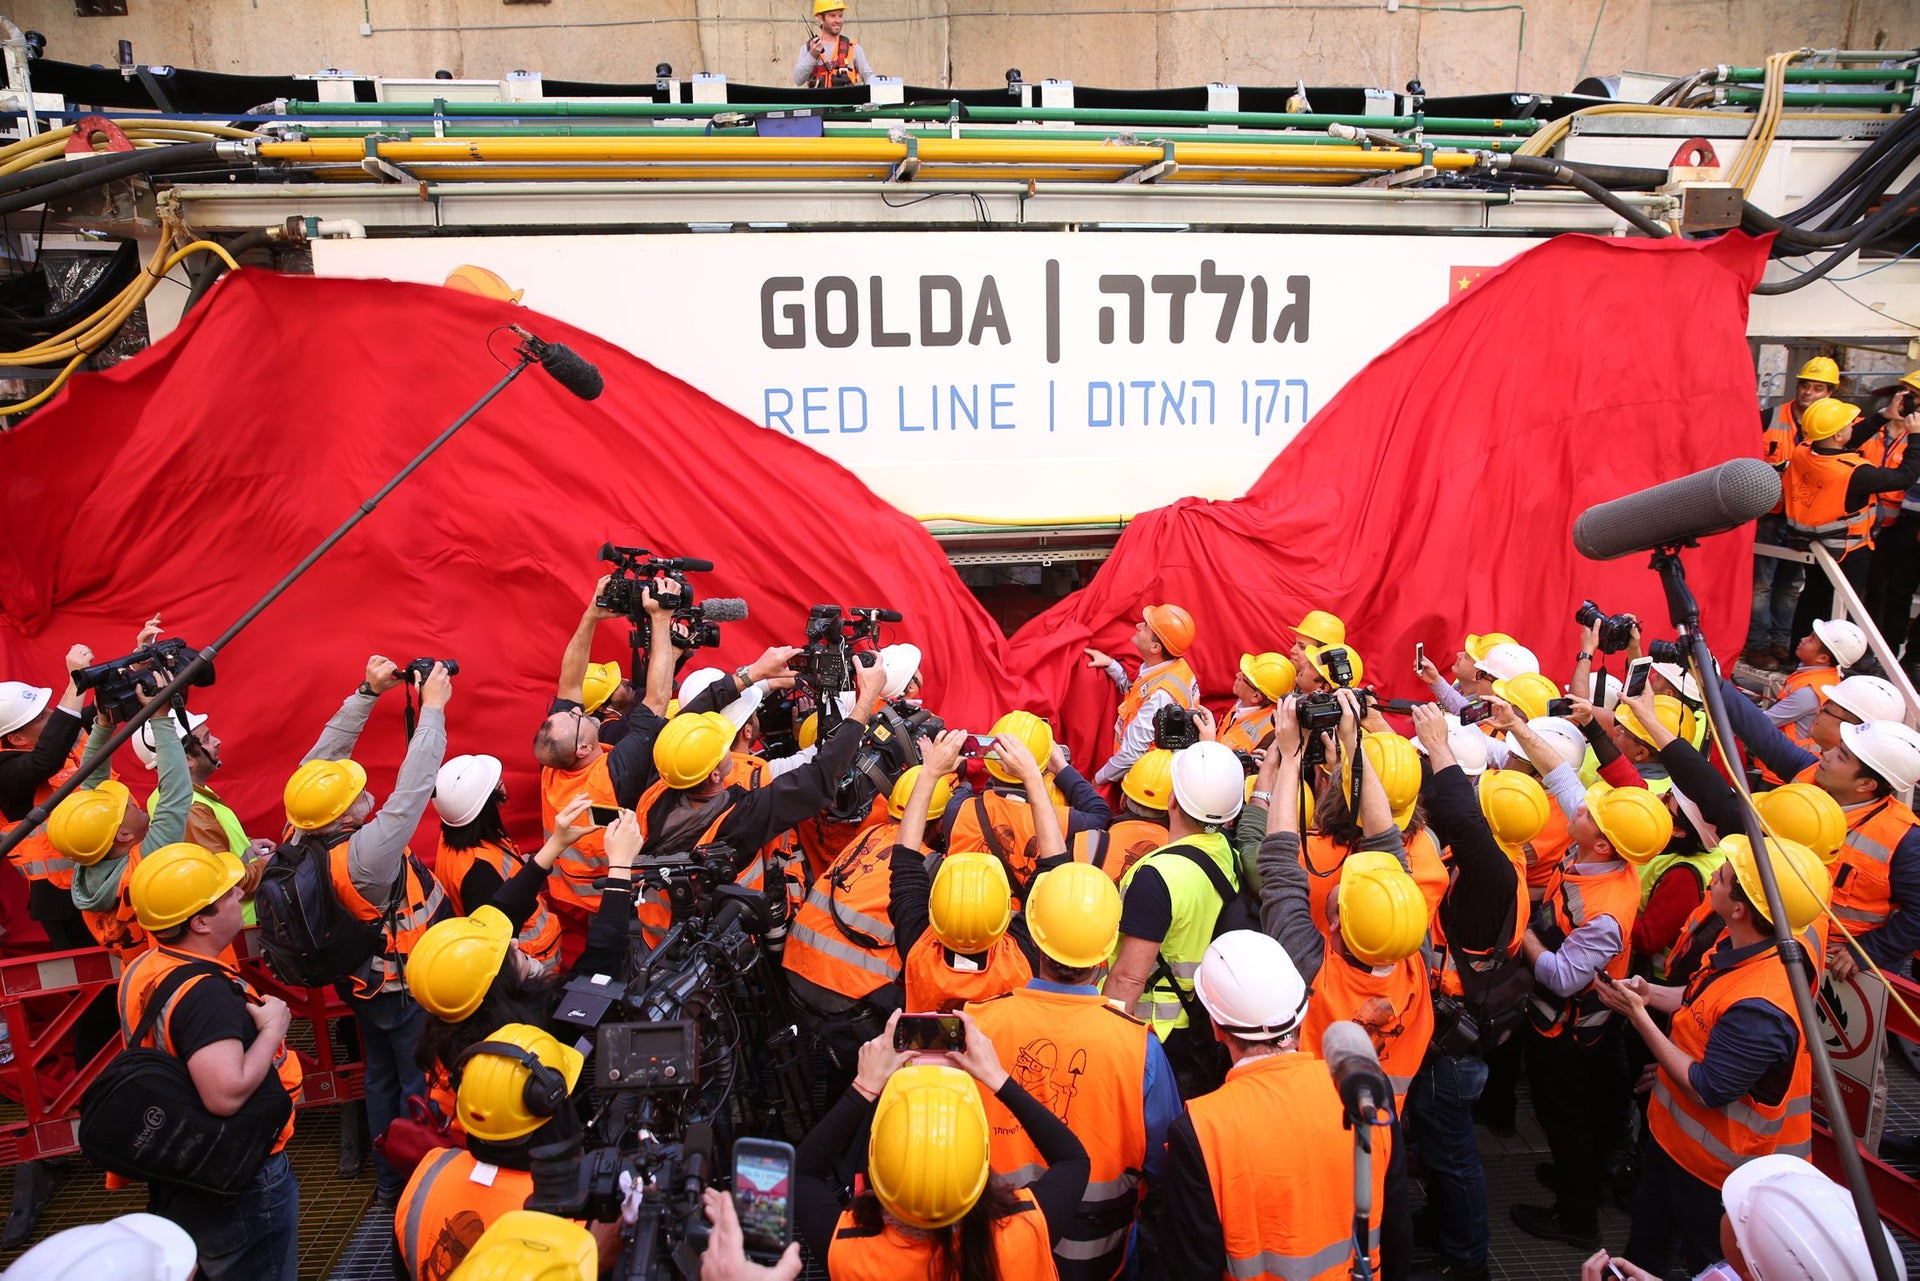 A ceremony marking the excavation of the Red Line's Golda Station on the Tel Aviv Light Rail, February 2017.